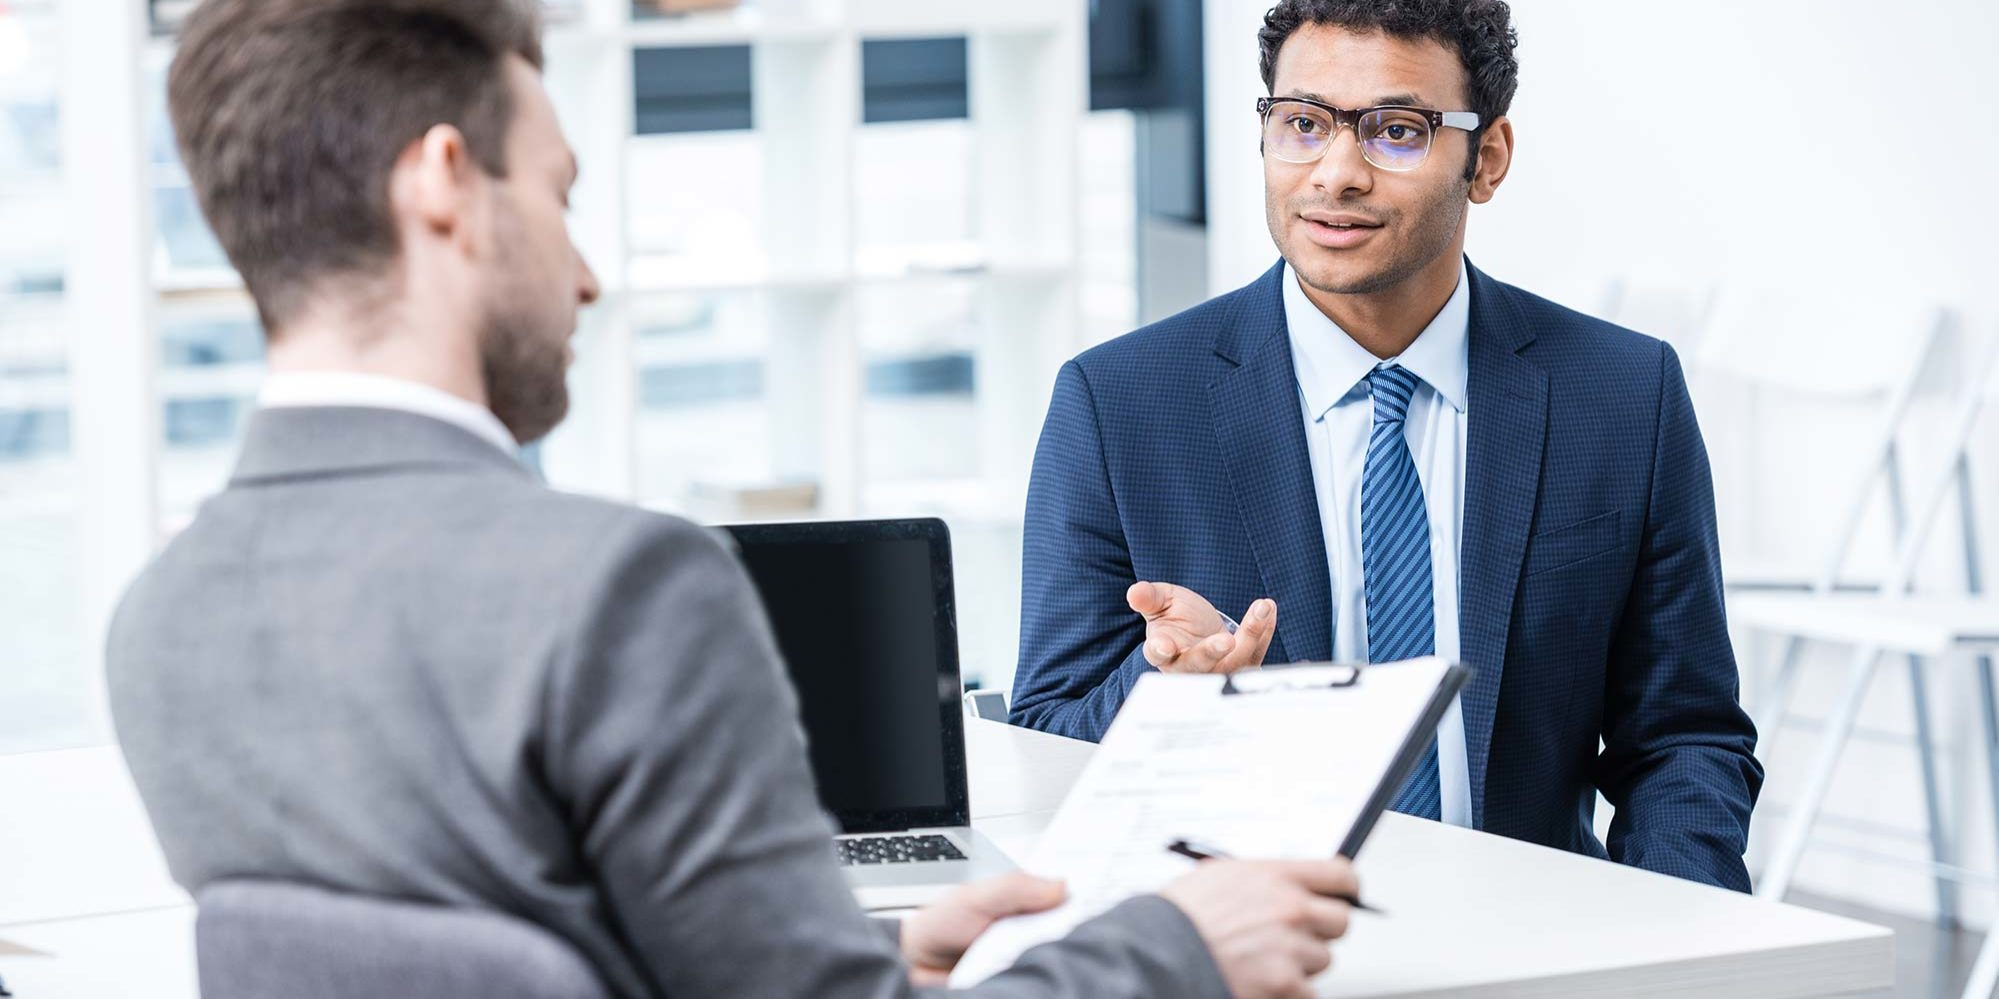 What important questions should a small business owner ask before hiring an accountant?